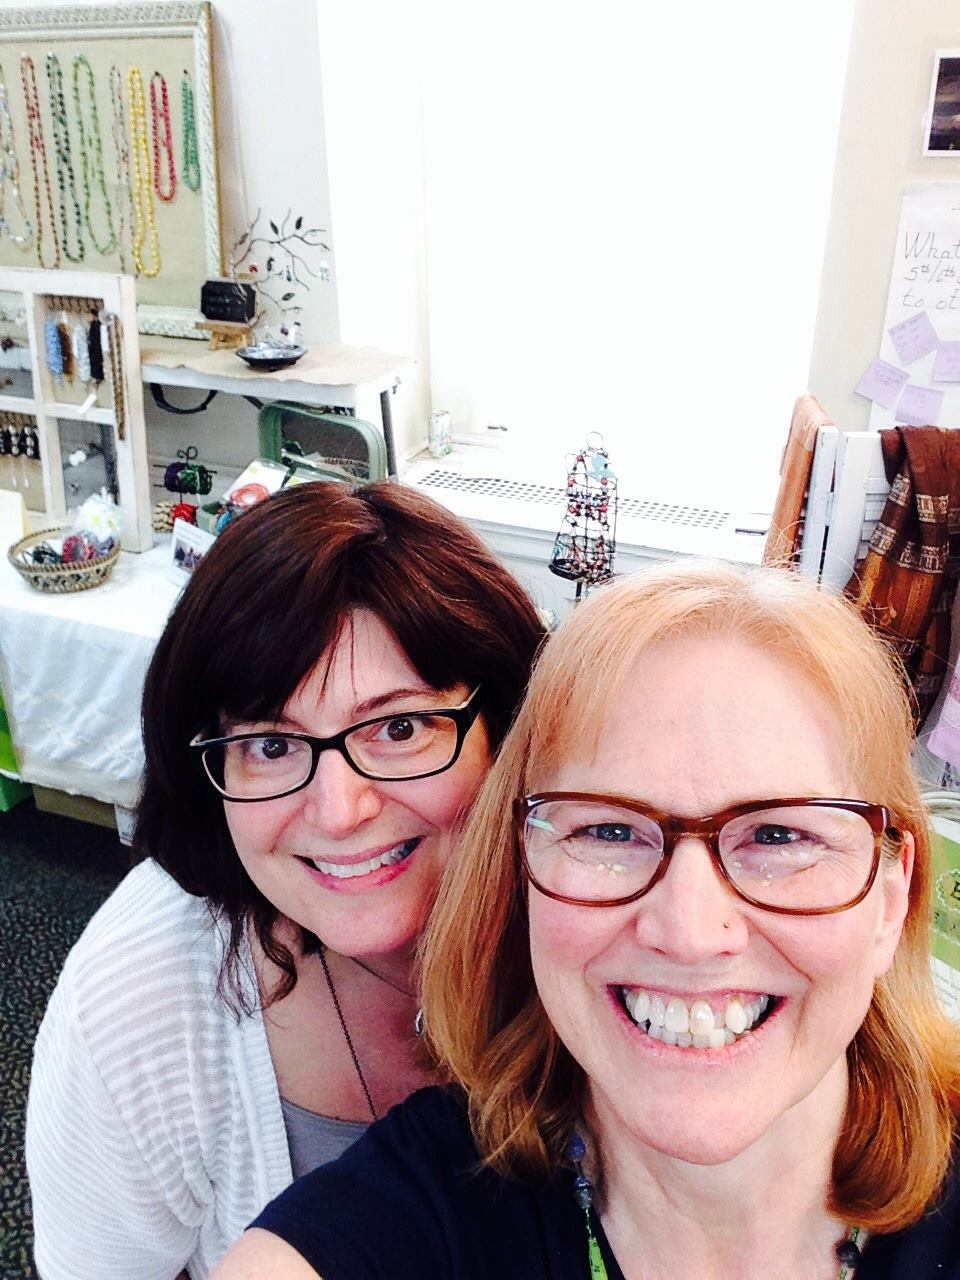 Julie and Deb selling Elevat products at a fair trade sale